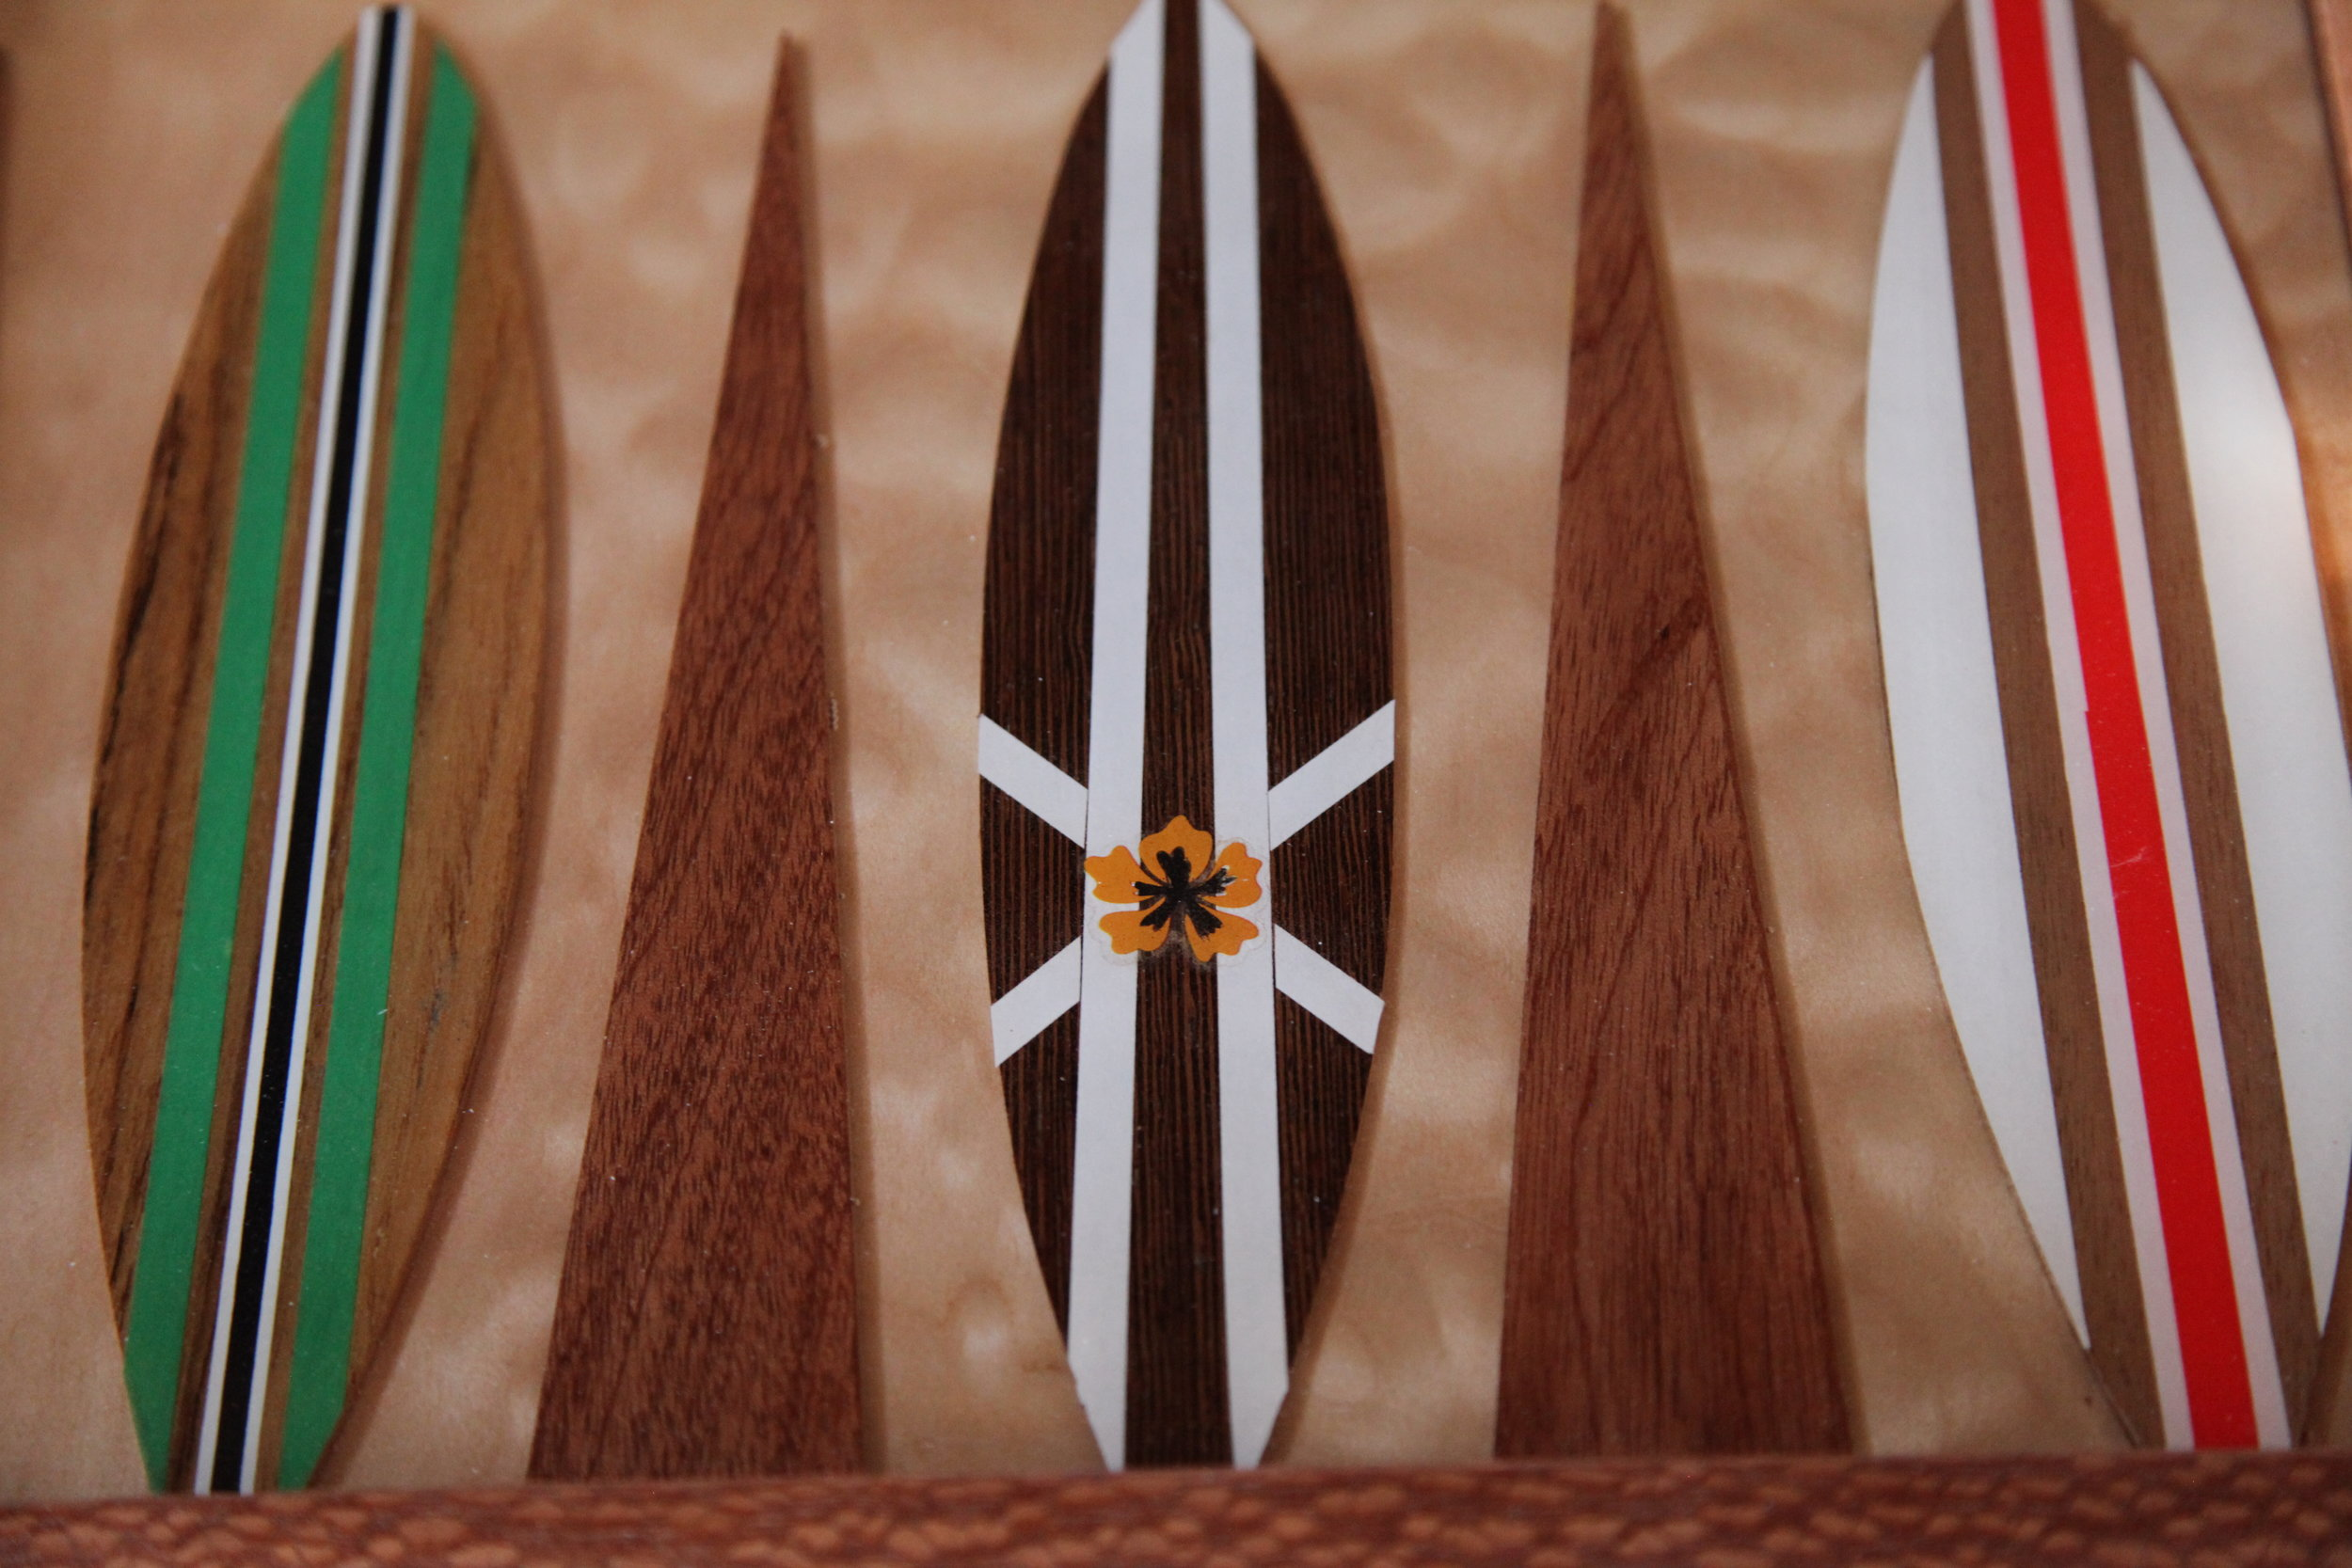 Detail of hand decorated surfboard